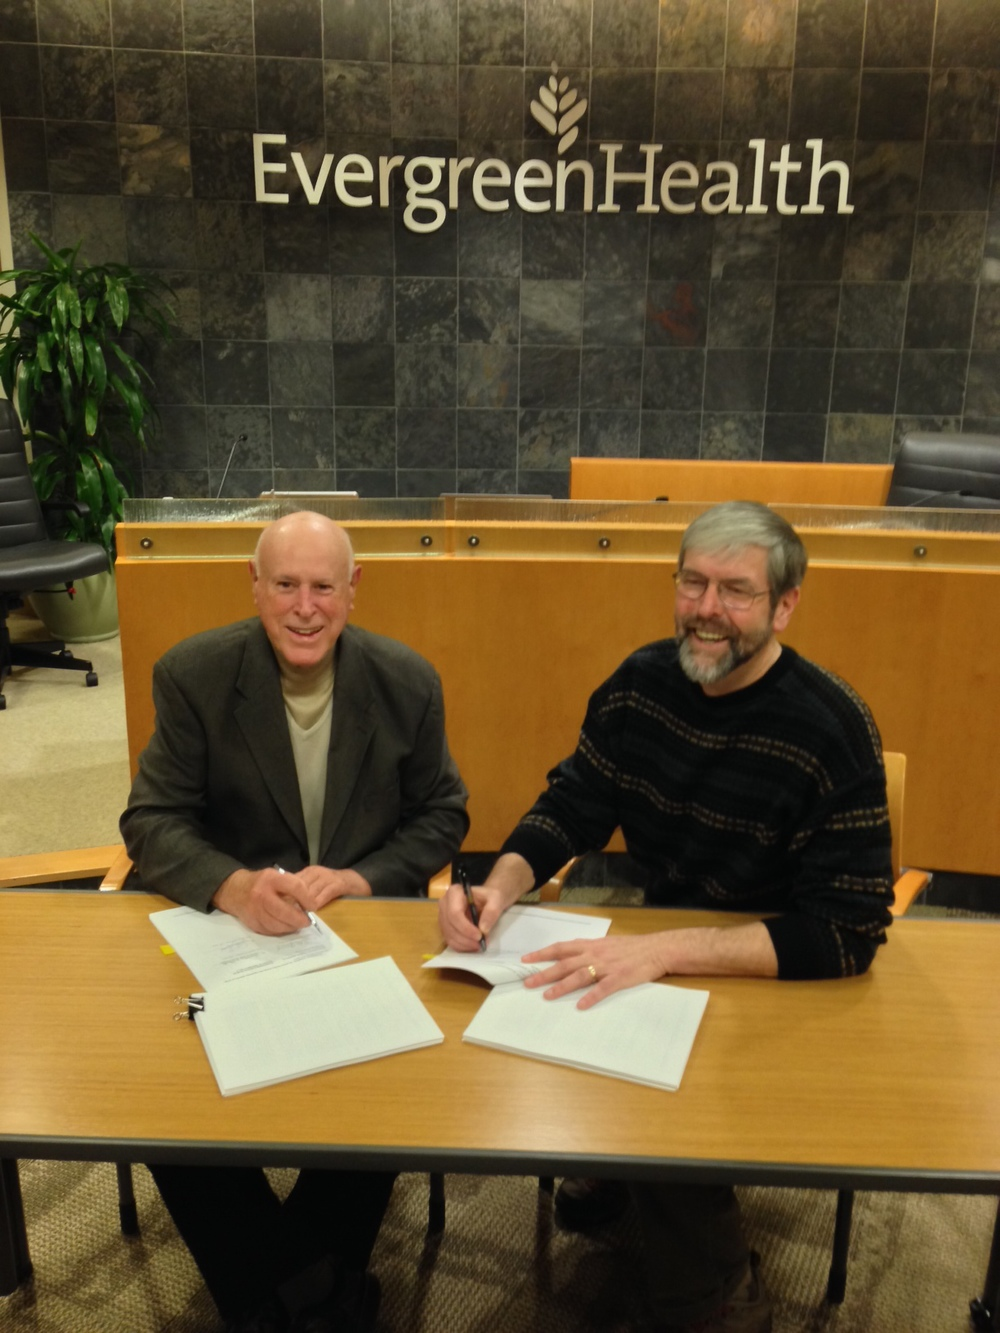 Chair of the EvergreenHealth Board of Commissioners, Al DeYoung (left), and Valley General Hospital Commissioner Tony Balk (right) signed the agreement.